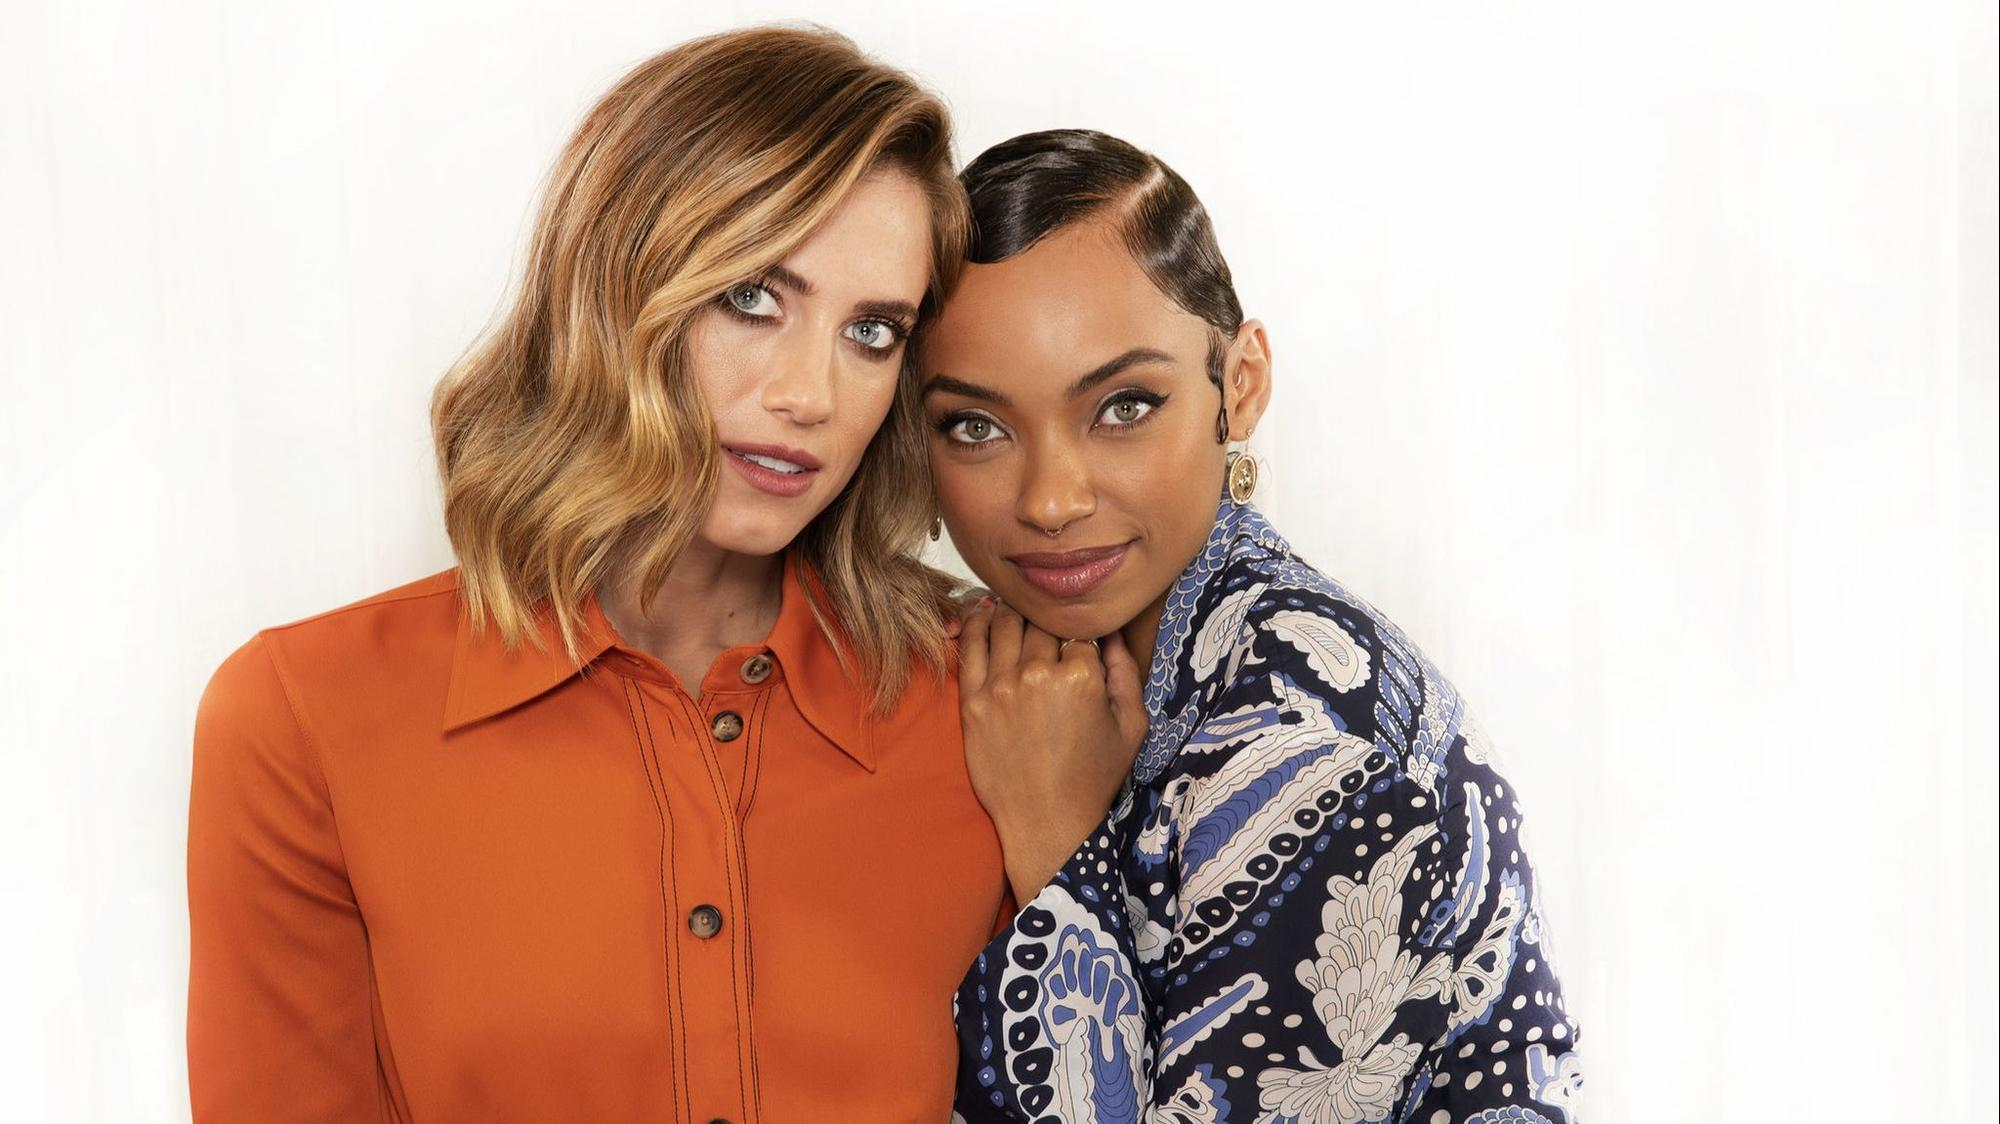 In Netflix's 'The Perfection,' Allison Williams and Logan Browning are destined for greatness